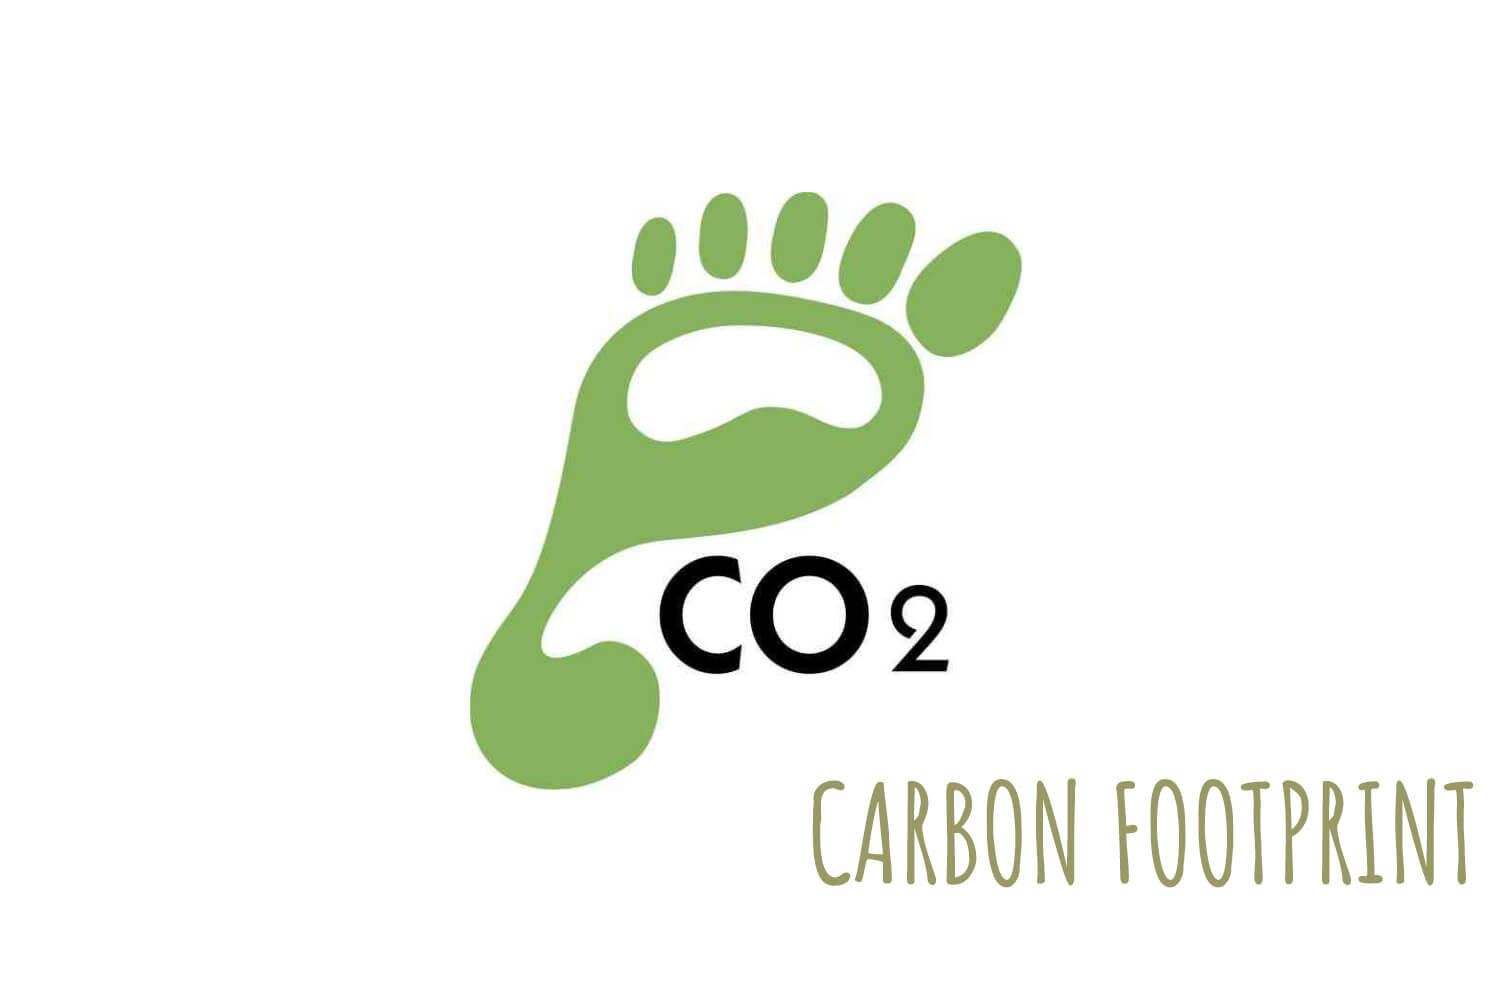 Carboon Footprint